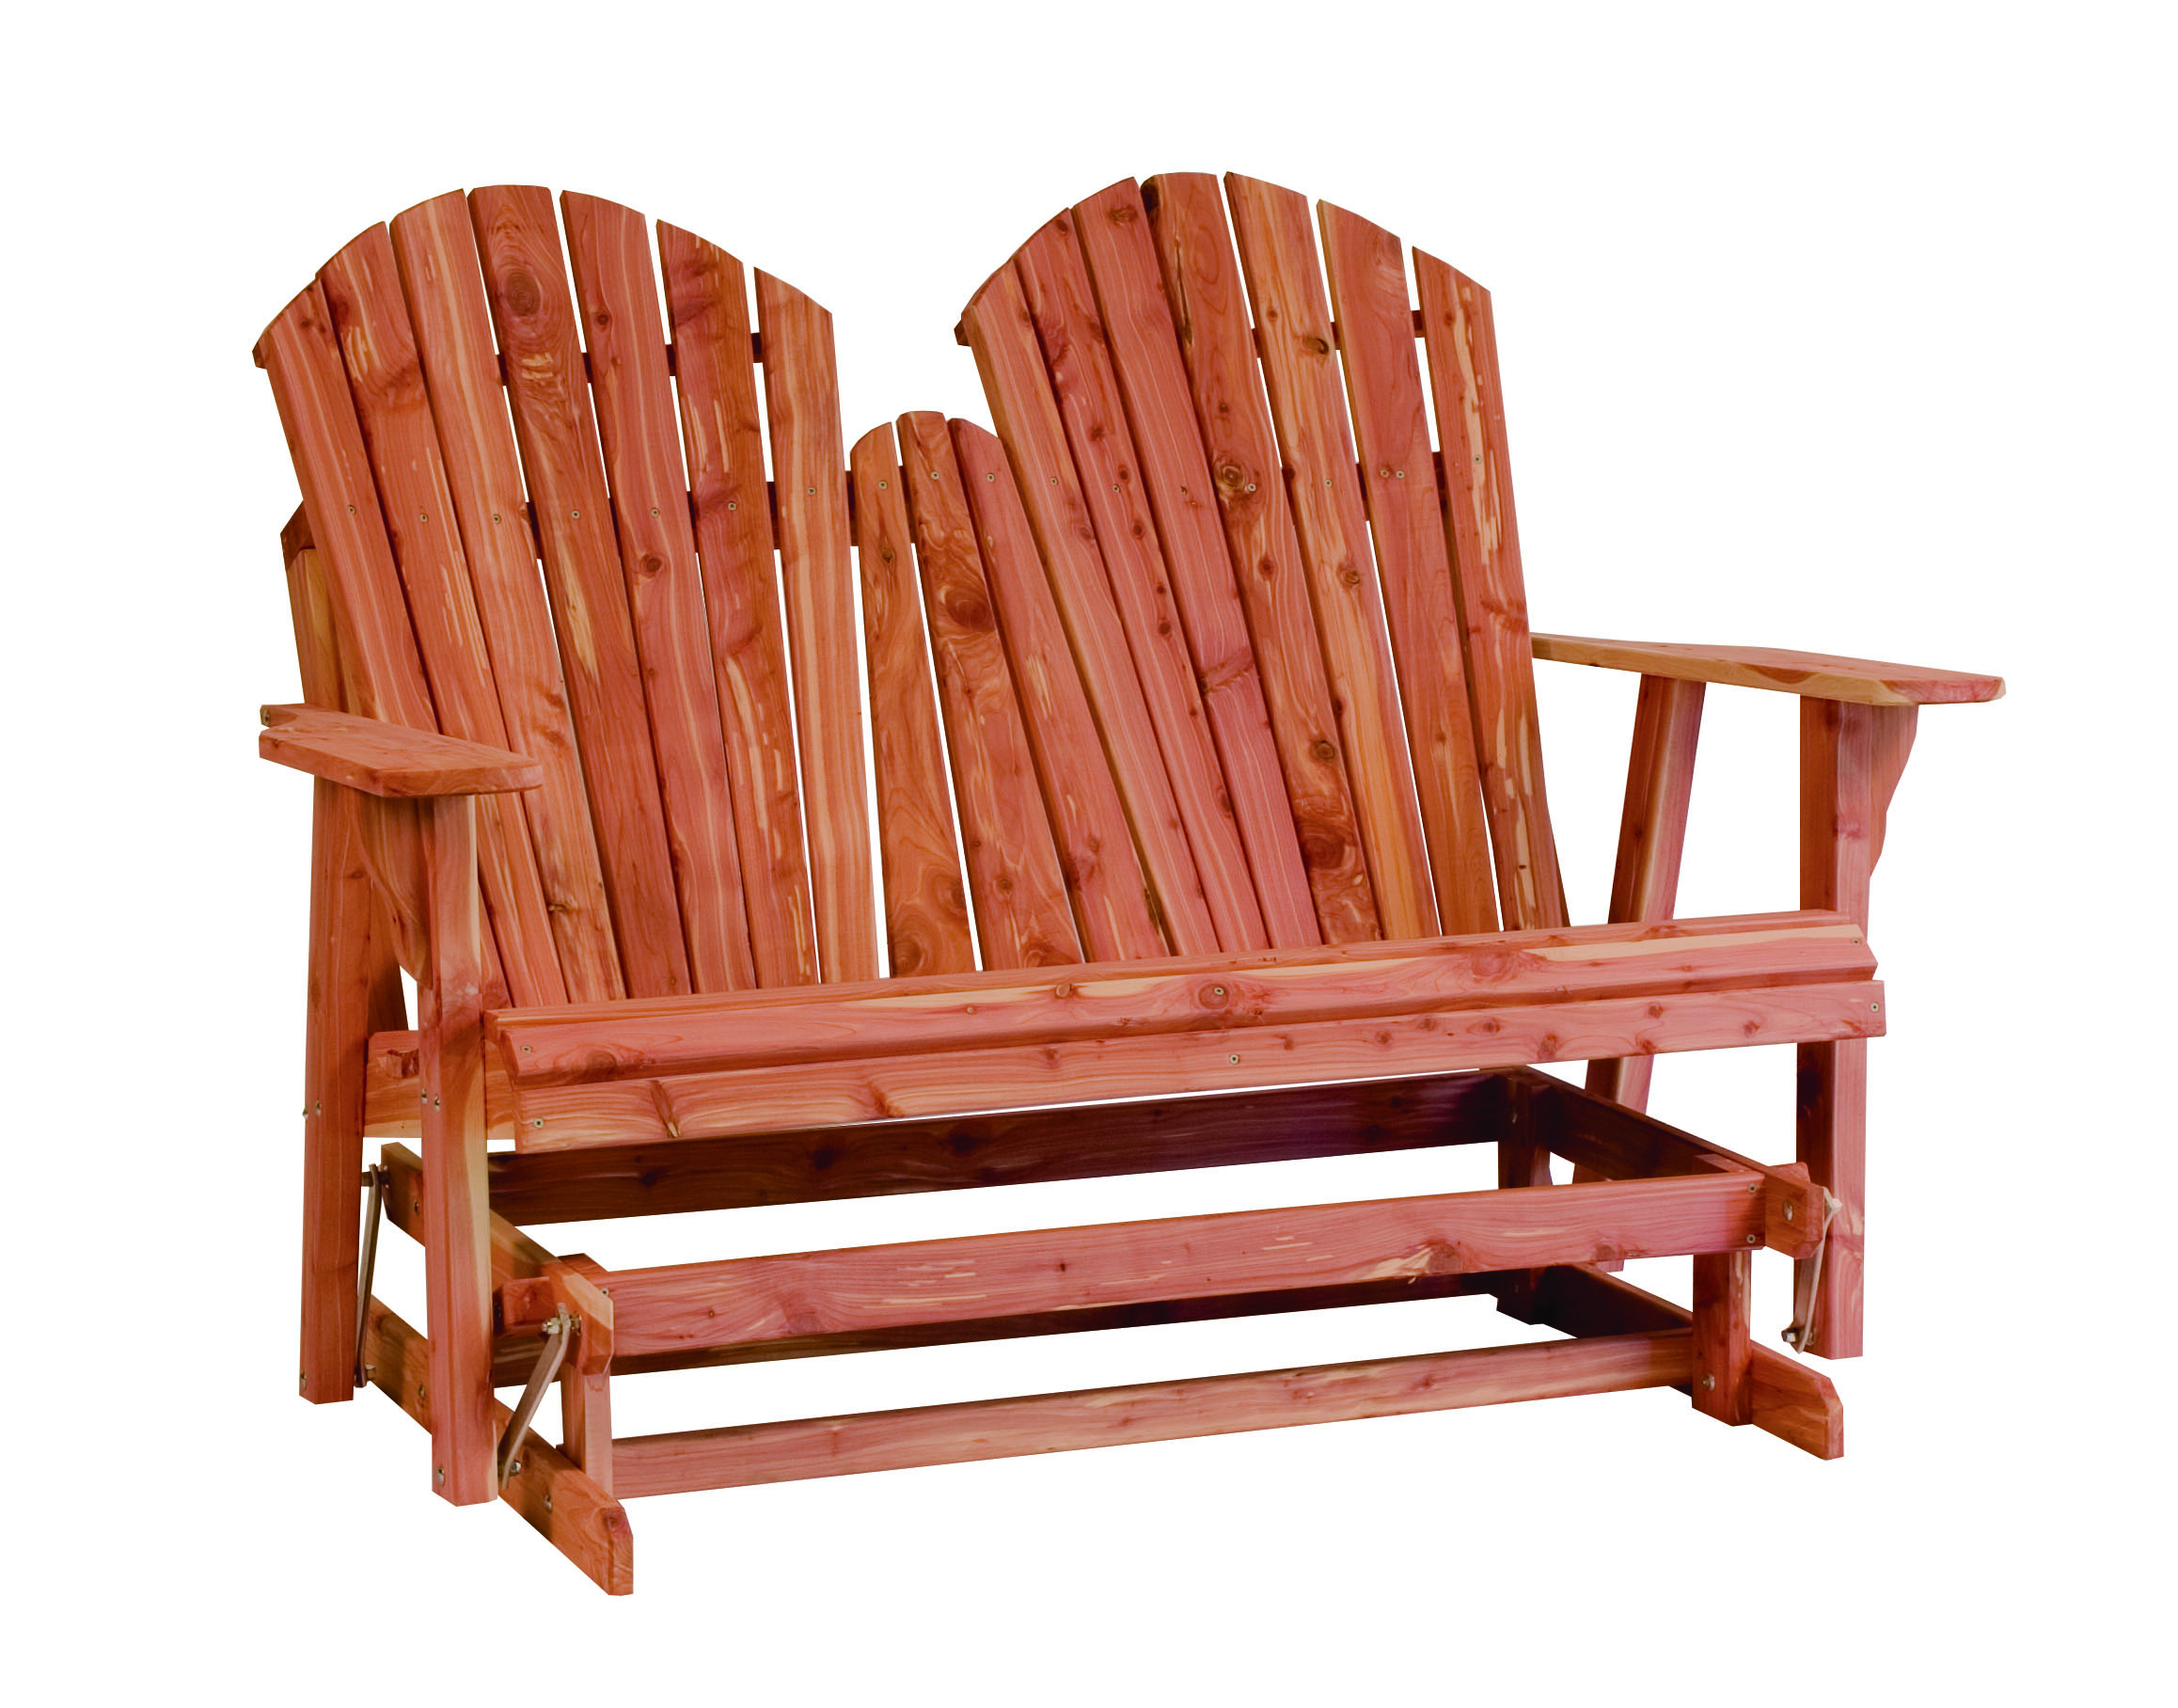 Rustic Red Cedar Gliders – Sturgeon River Pottery – Petoskey Throughout Loveseat Glider Benches (View 15 of 25)